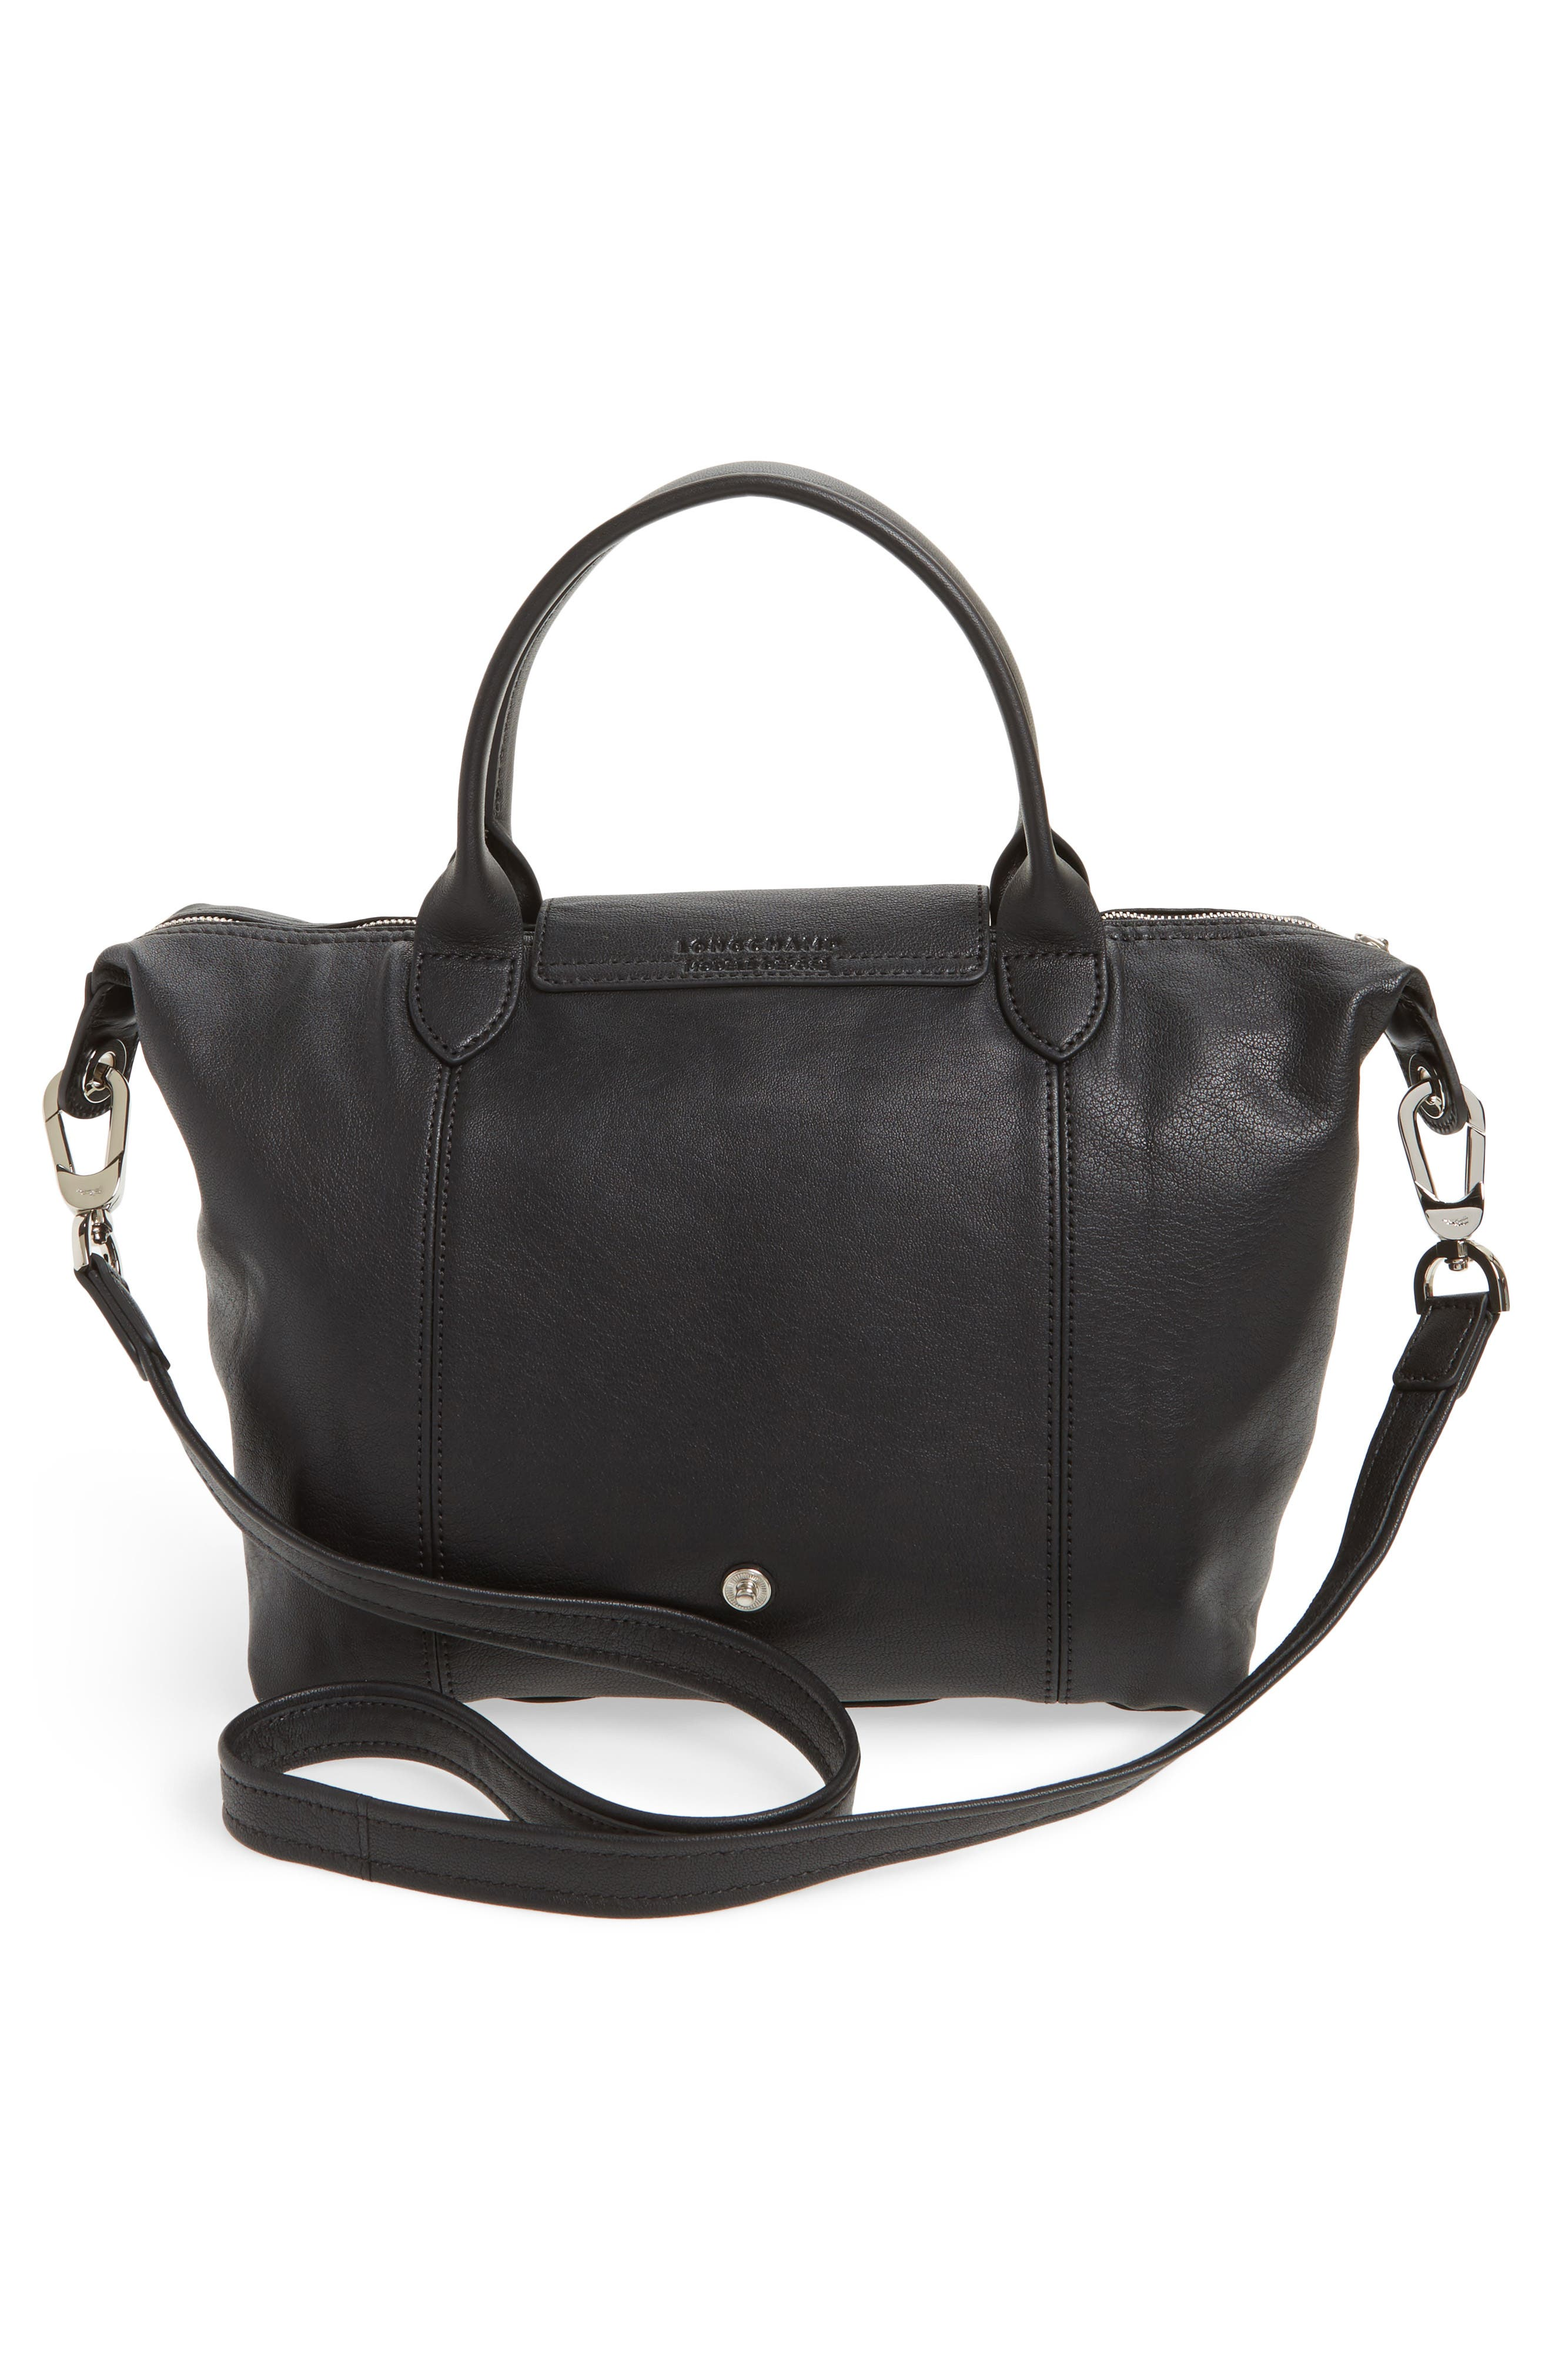 Alternate Image 3  - Longchamp 'Le Pliage Cuir' Leather Handbag